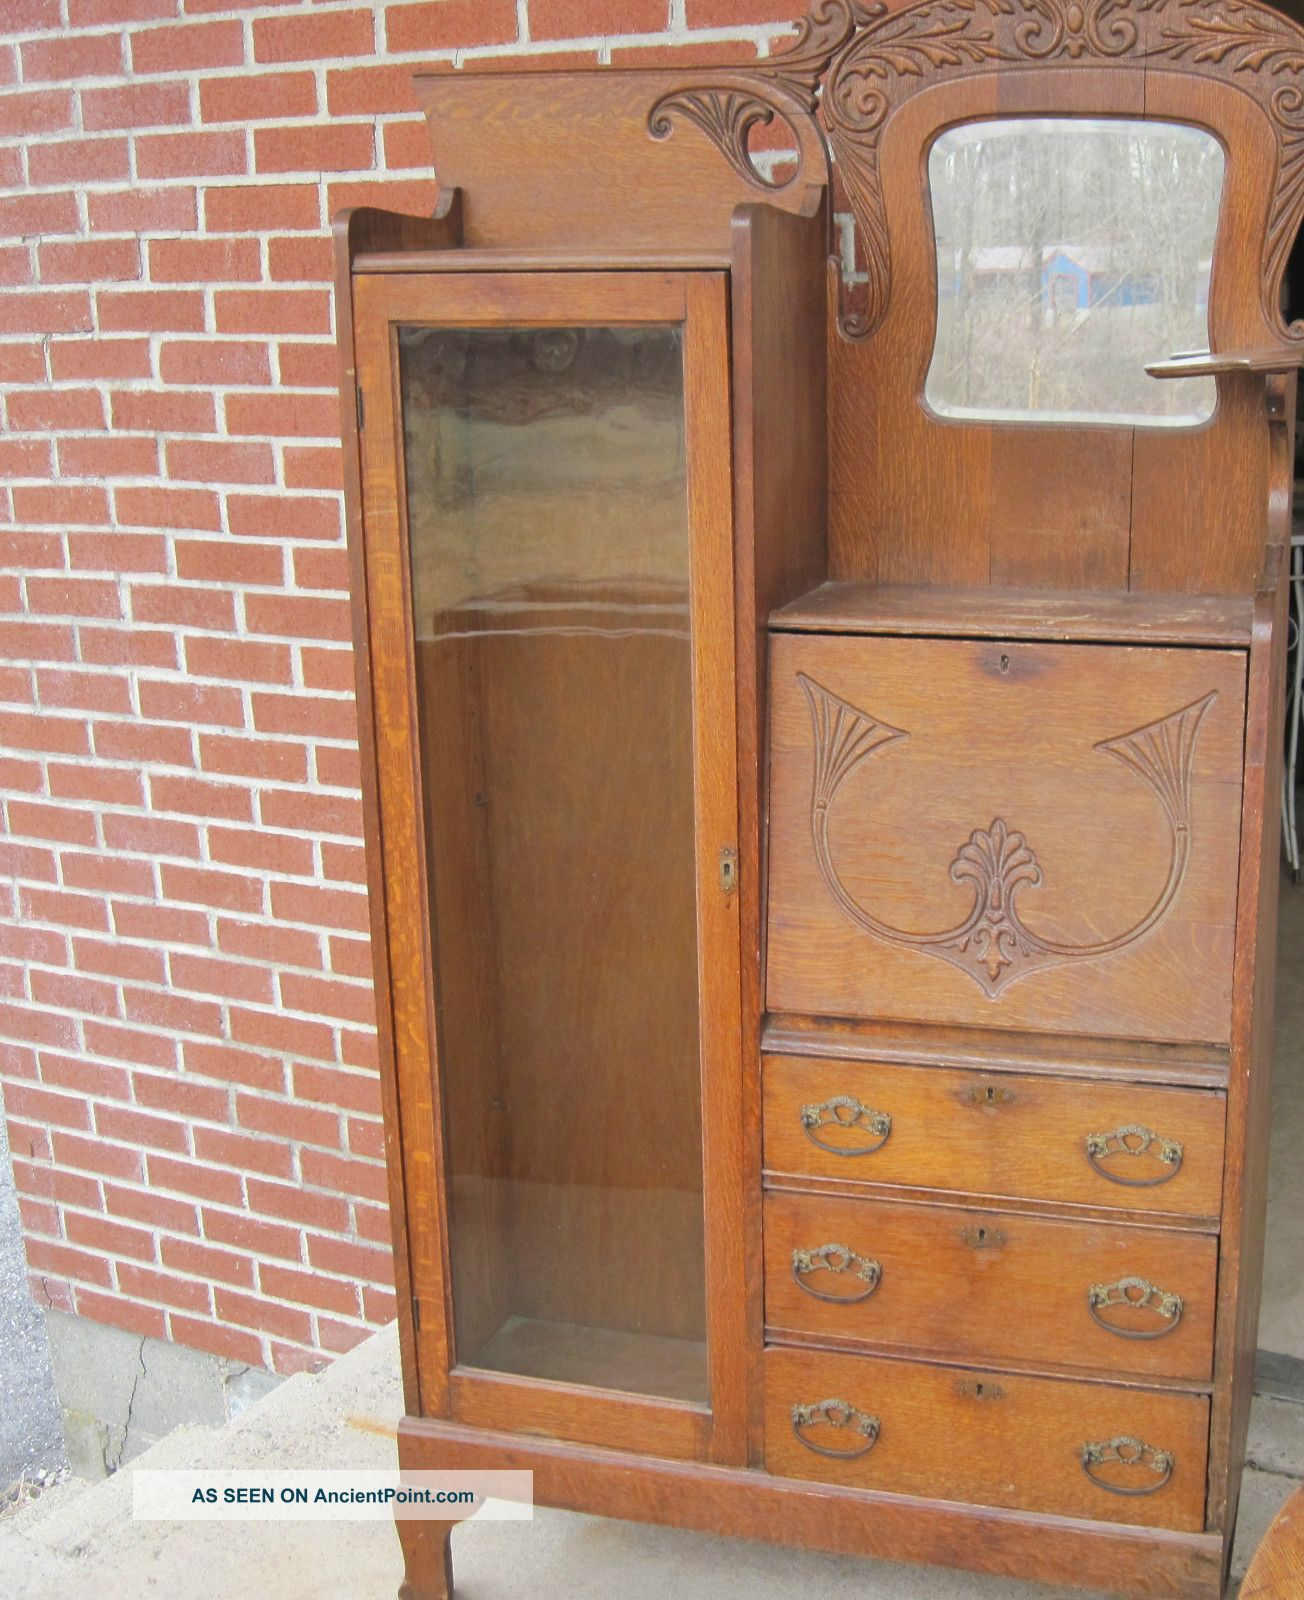 Antique Side By Side Golden Oak Cabinet Secretary Desk 1800-1899 photo